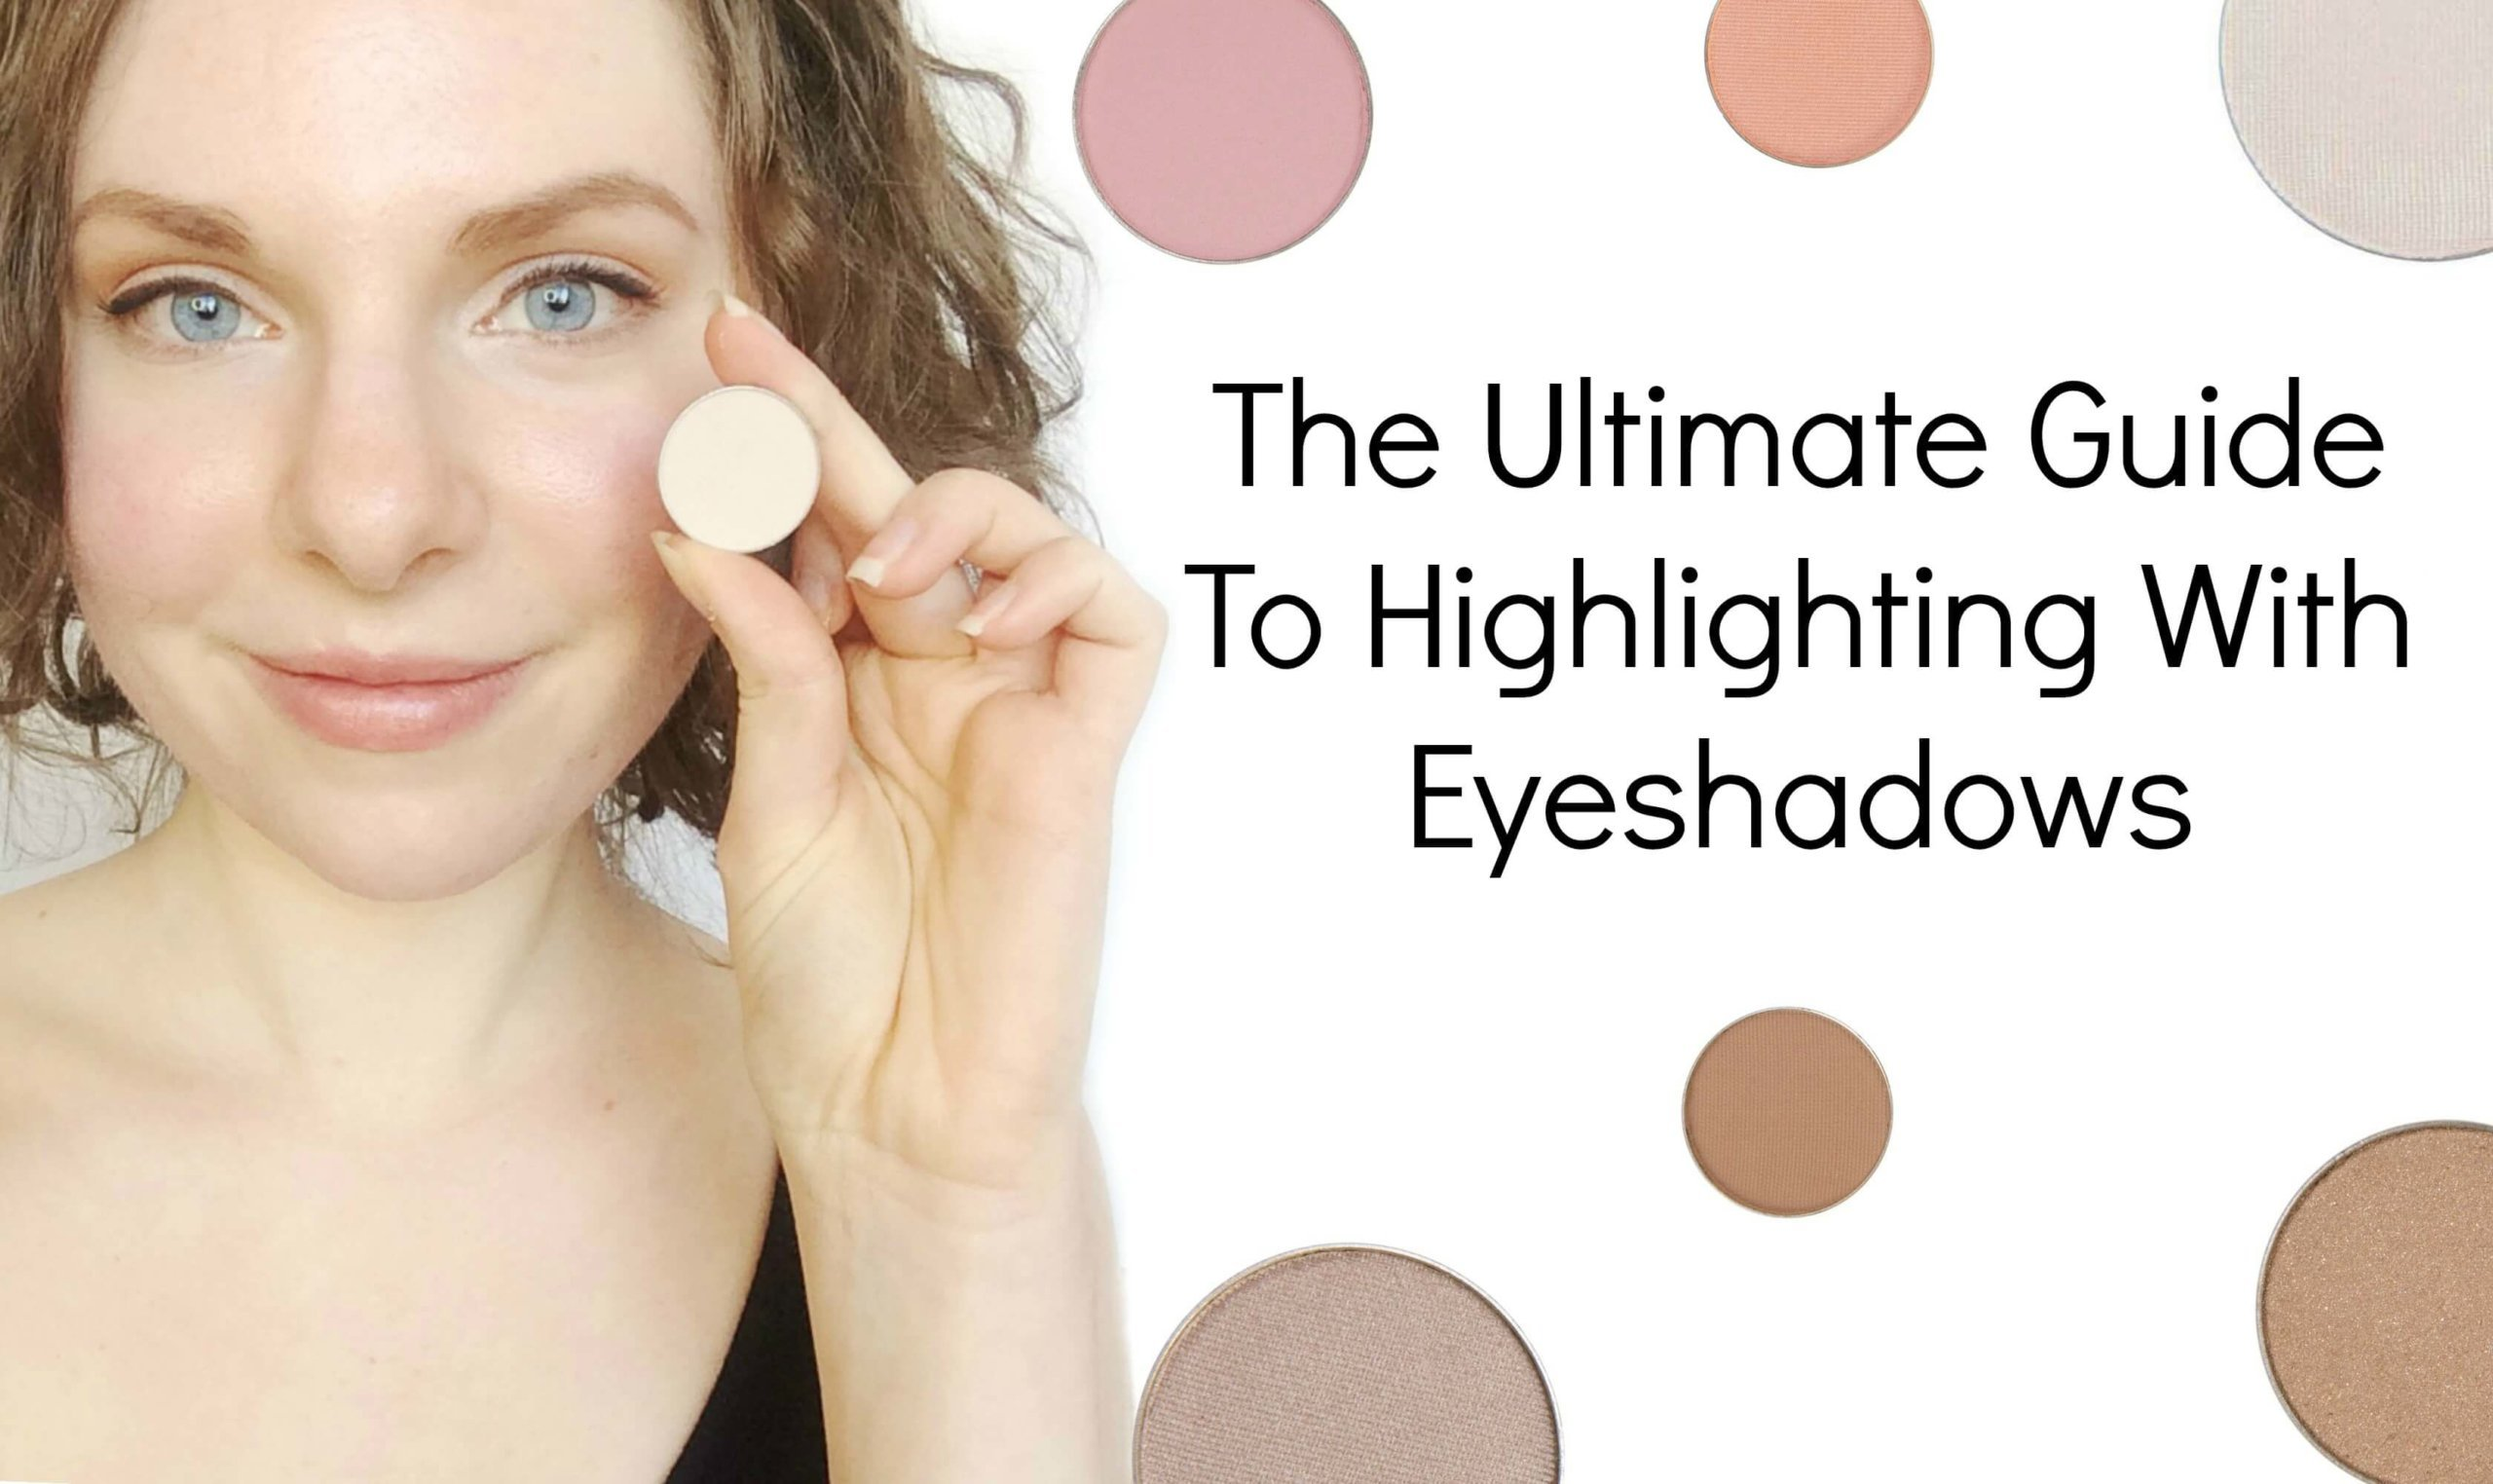 The Ultimate Guide To Highlighting With Eyeshadows